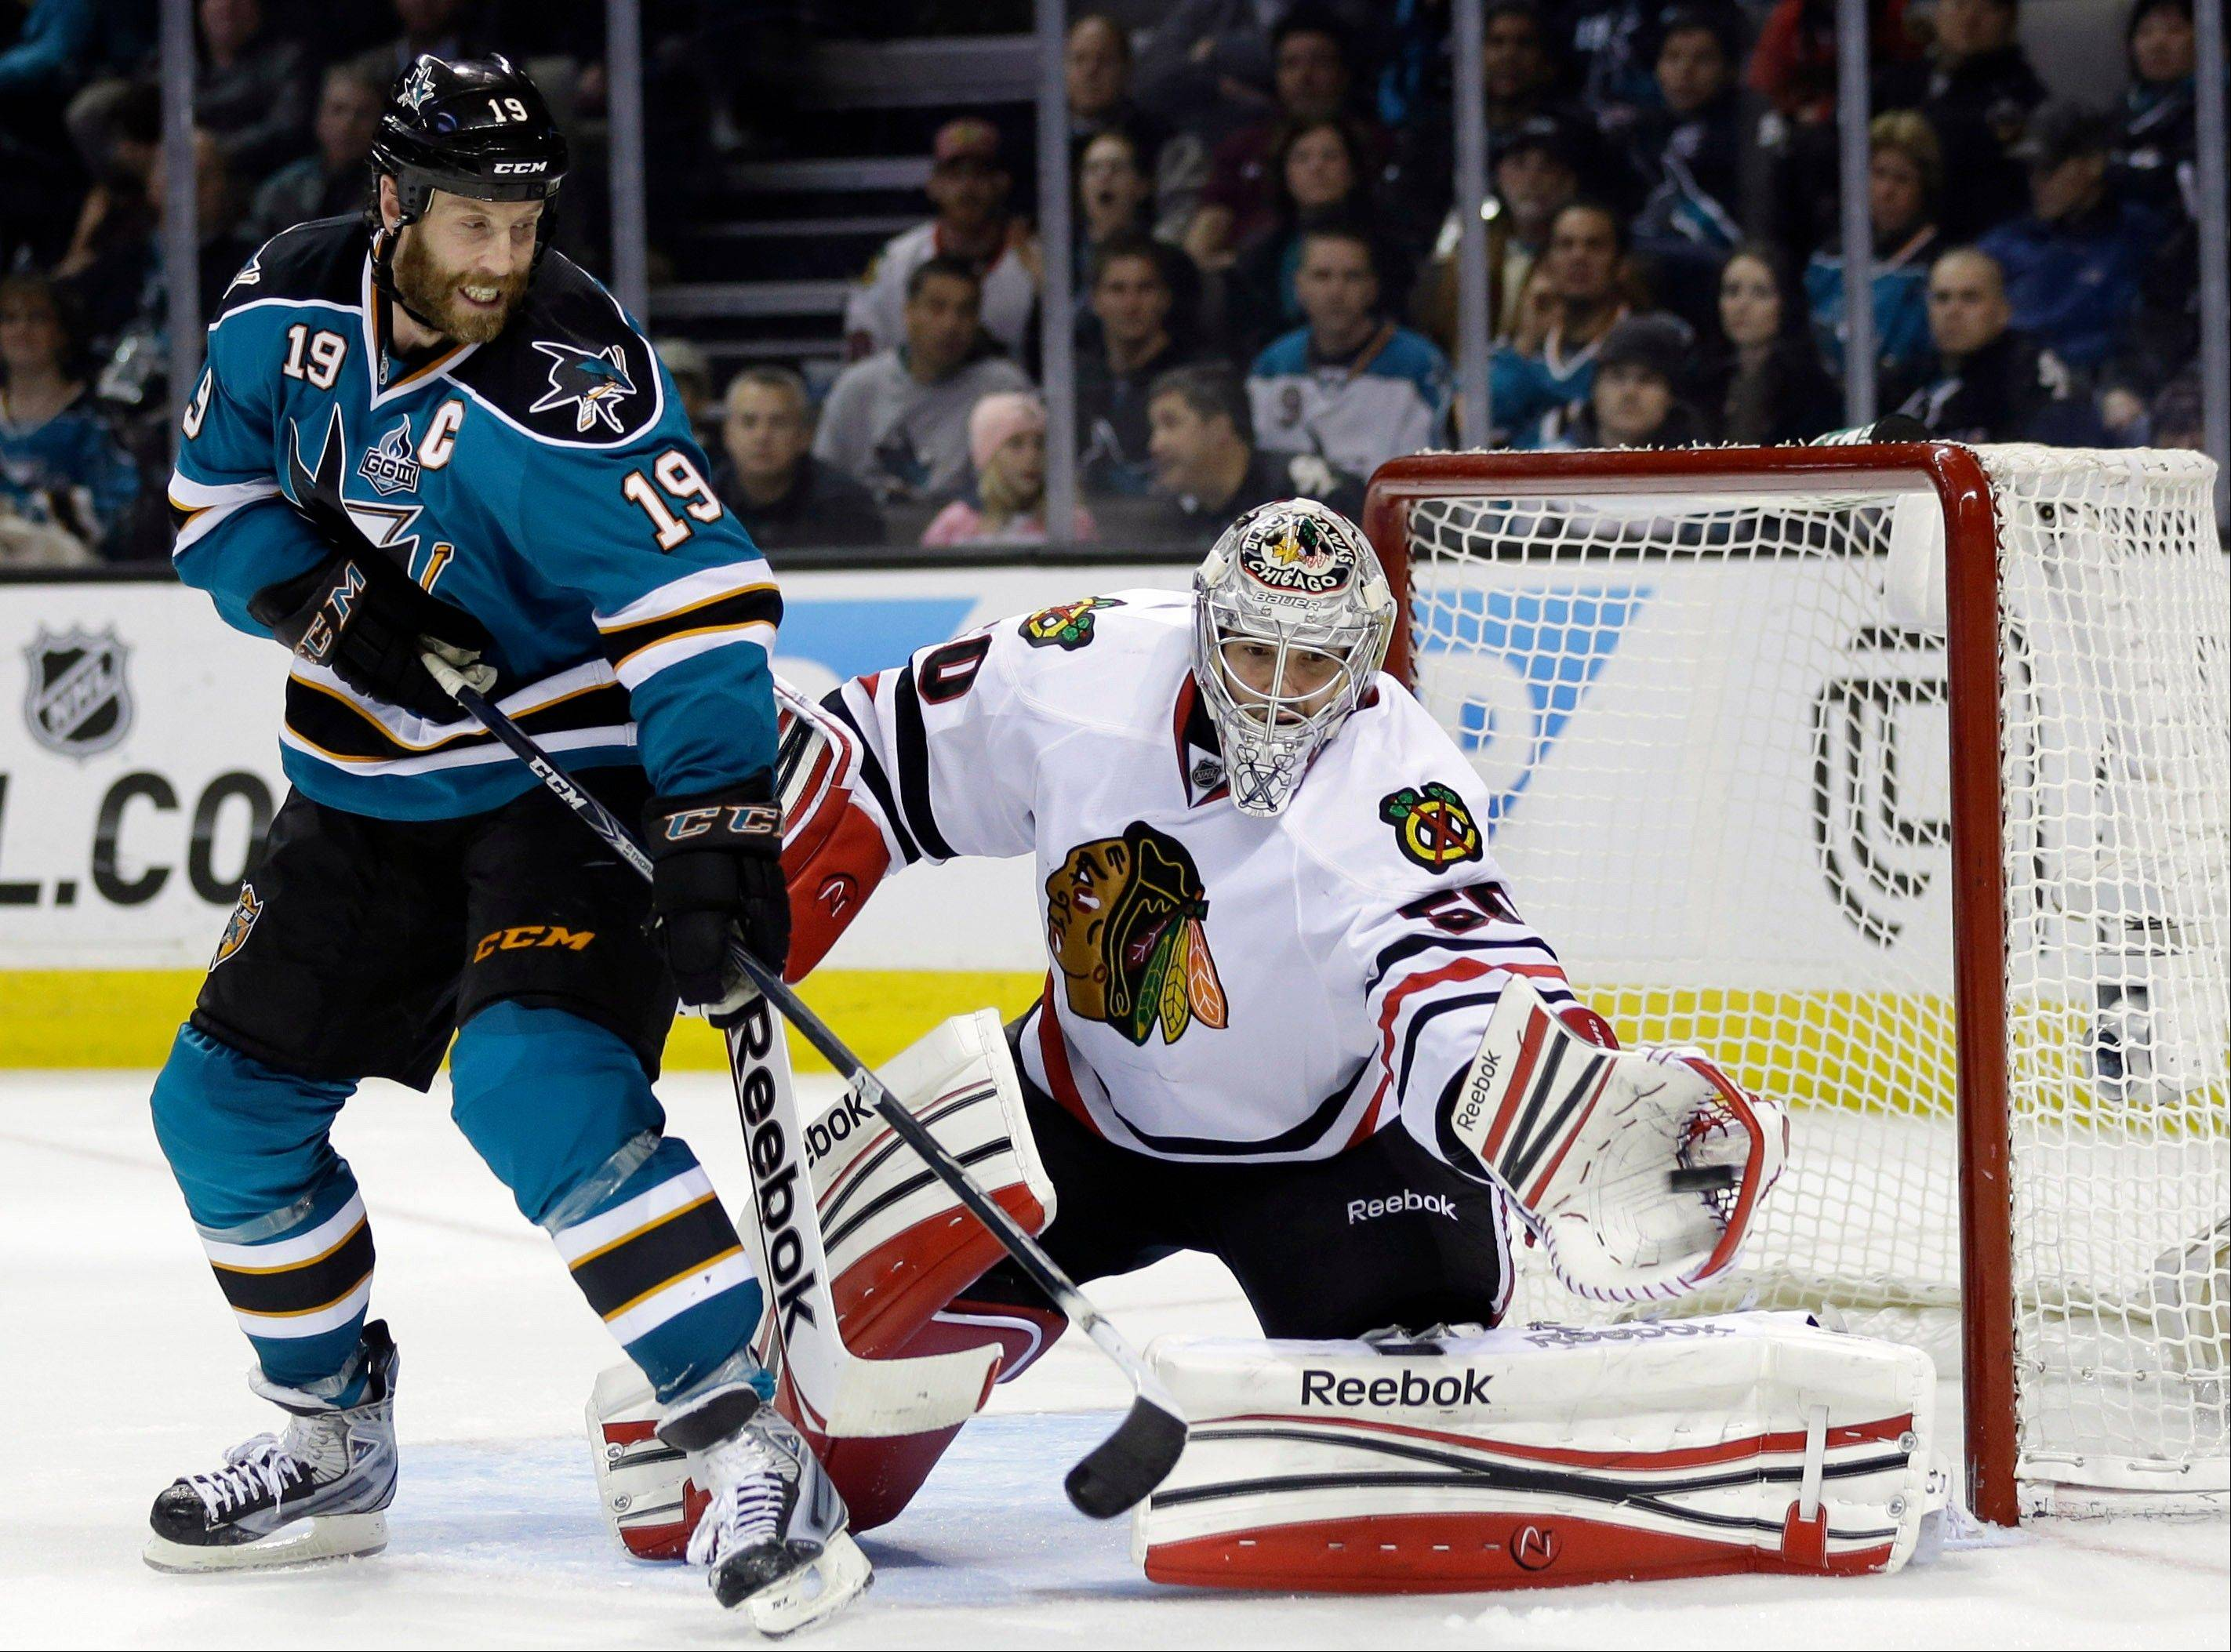 Blackhawks goalie Corey Crawford (50) stops a shot on goal next to San Jose Sharks center Joe Thornton (19) during the second period of an NHL hockey game in San Jose, Calif., Tuesday, Feb. 5, 2013.